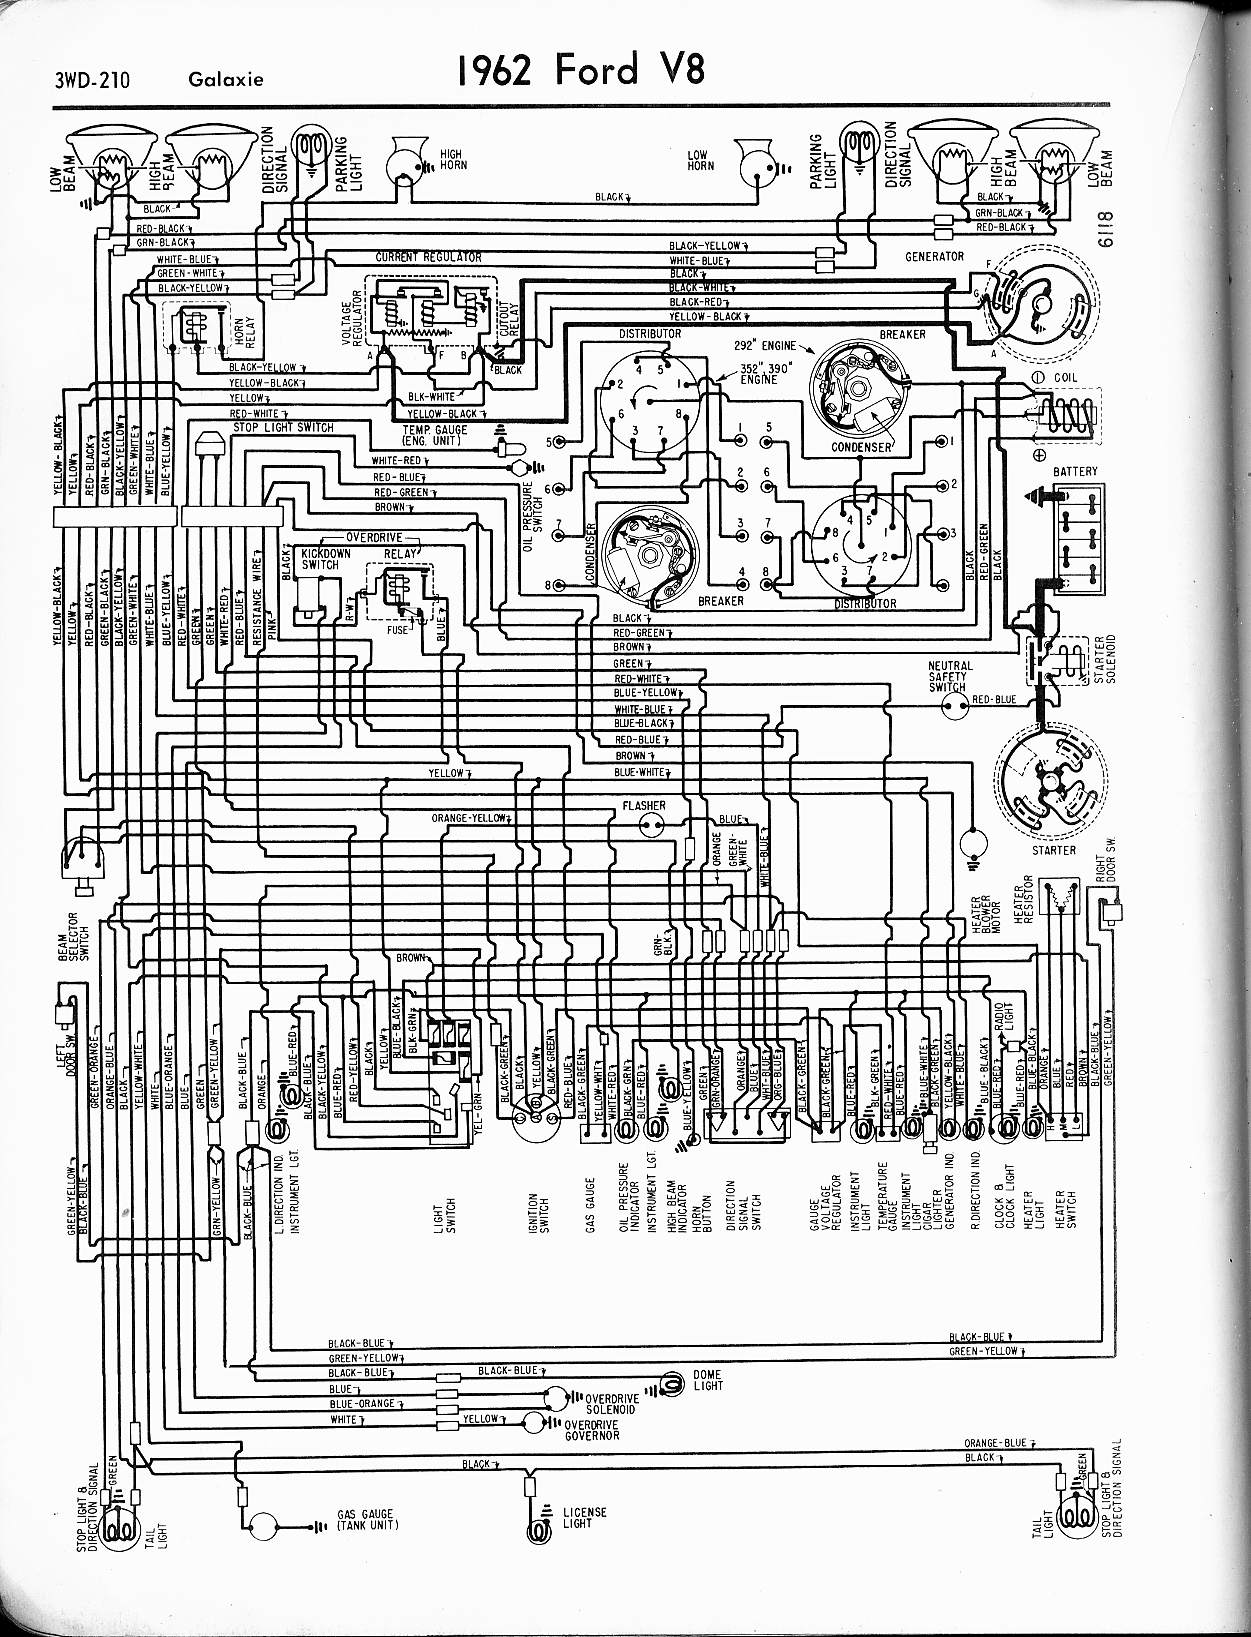 1962 Thunderbird Wiring Diagram Archive Of Automotive 37 Ford 57 65 Diagrams Rh Oldcarmanualproject Com